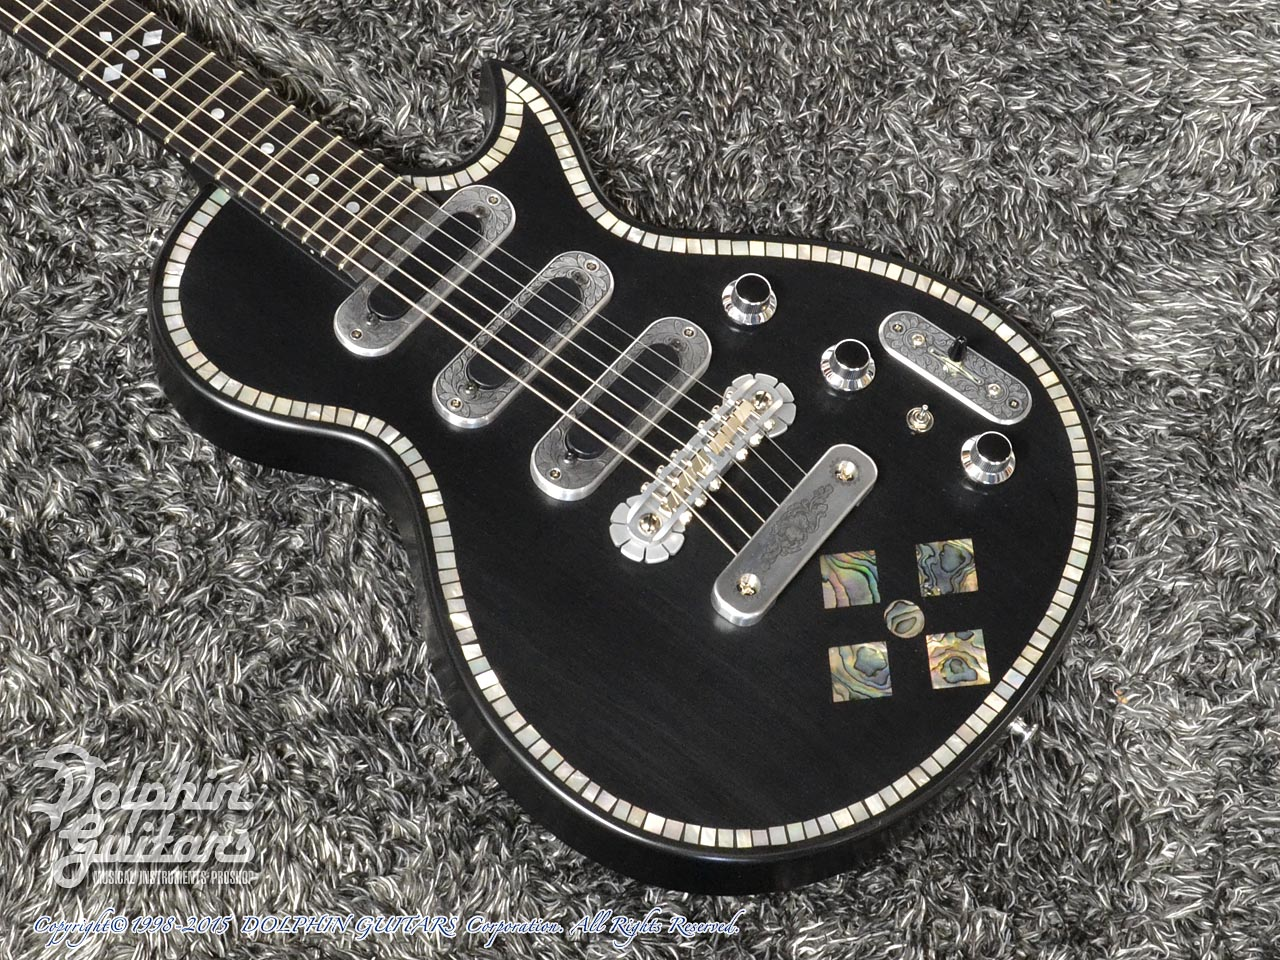 ZEMAITIS =Custom Shop=: CS22SU 3S Black Pearl Diamond (1)